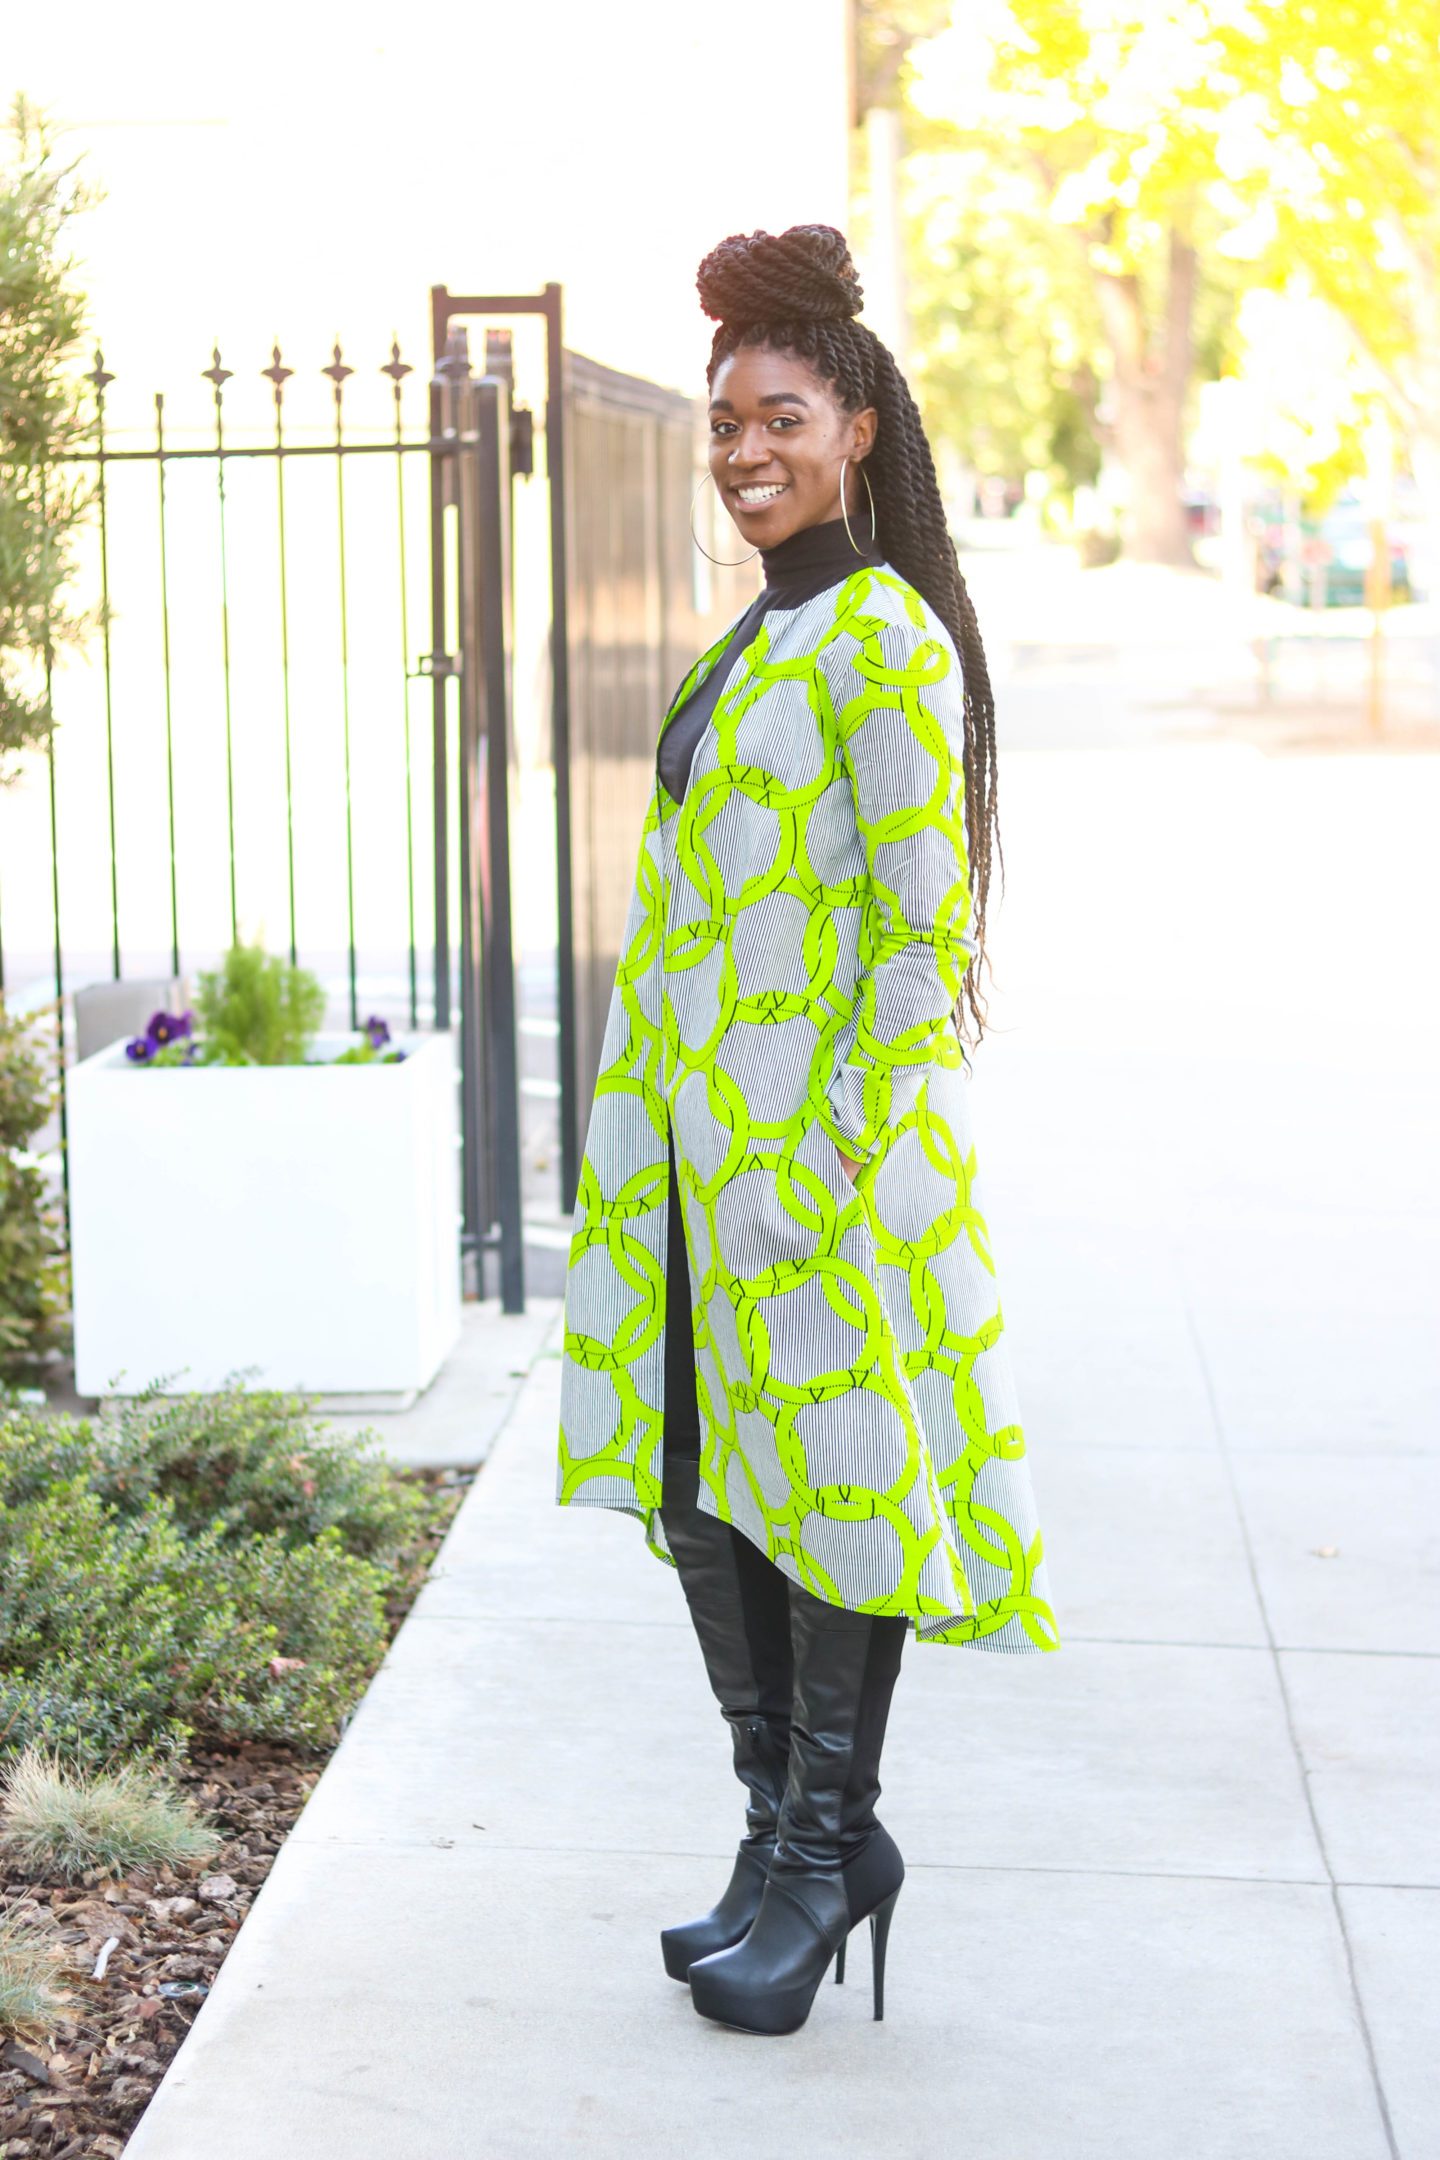 New Look 6514, DIY Duster, African Print Duster, Coat, Long Coat, Duster with pockets, sewing tutorials, African Fashion, African Print Fashion, DIY Fashion, Sewing tutorials for beginners, High-Low Duster